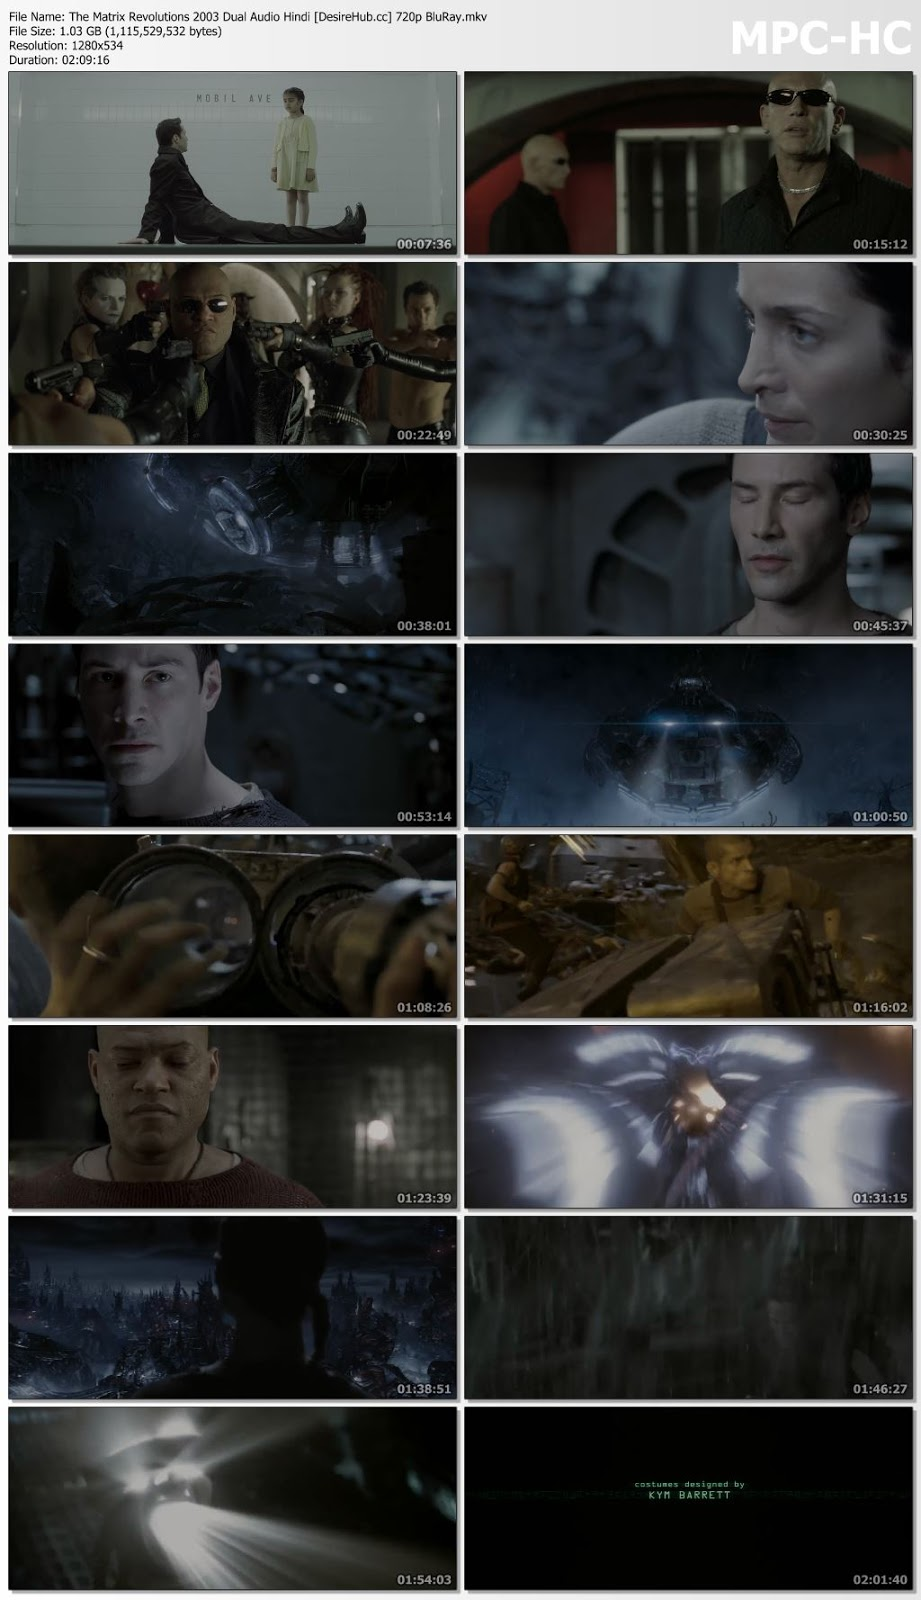 The Matrix Revolutions 2003 Dual Audio Hindi 480p BluRay 400MB Desirehub